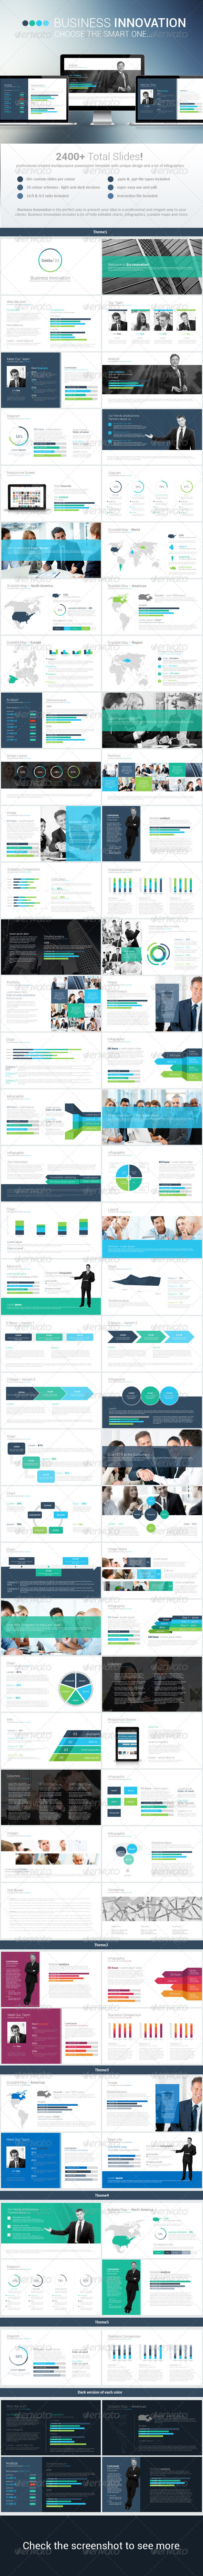 GraphicRiver Business Innovation Powerpoint Template 8676497